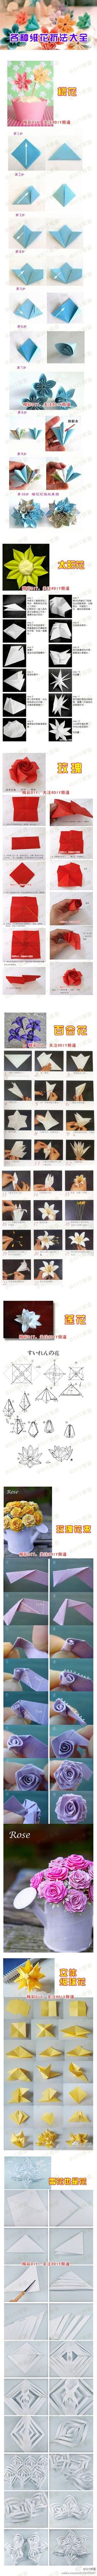 68 Best Origami Images Crafts Bricolage Do It Yourself Video Diagram Quotswan Quyetquot Amazing Flower How To Handmade Flowers Diy Paper